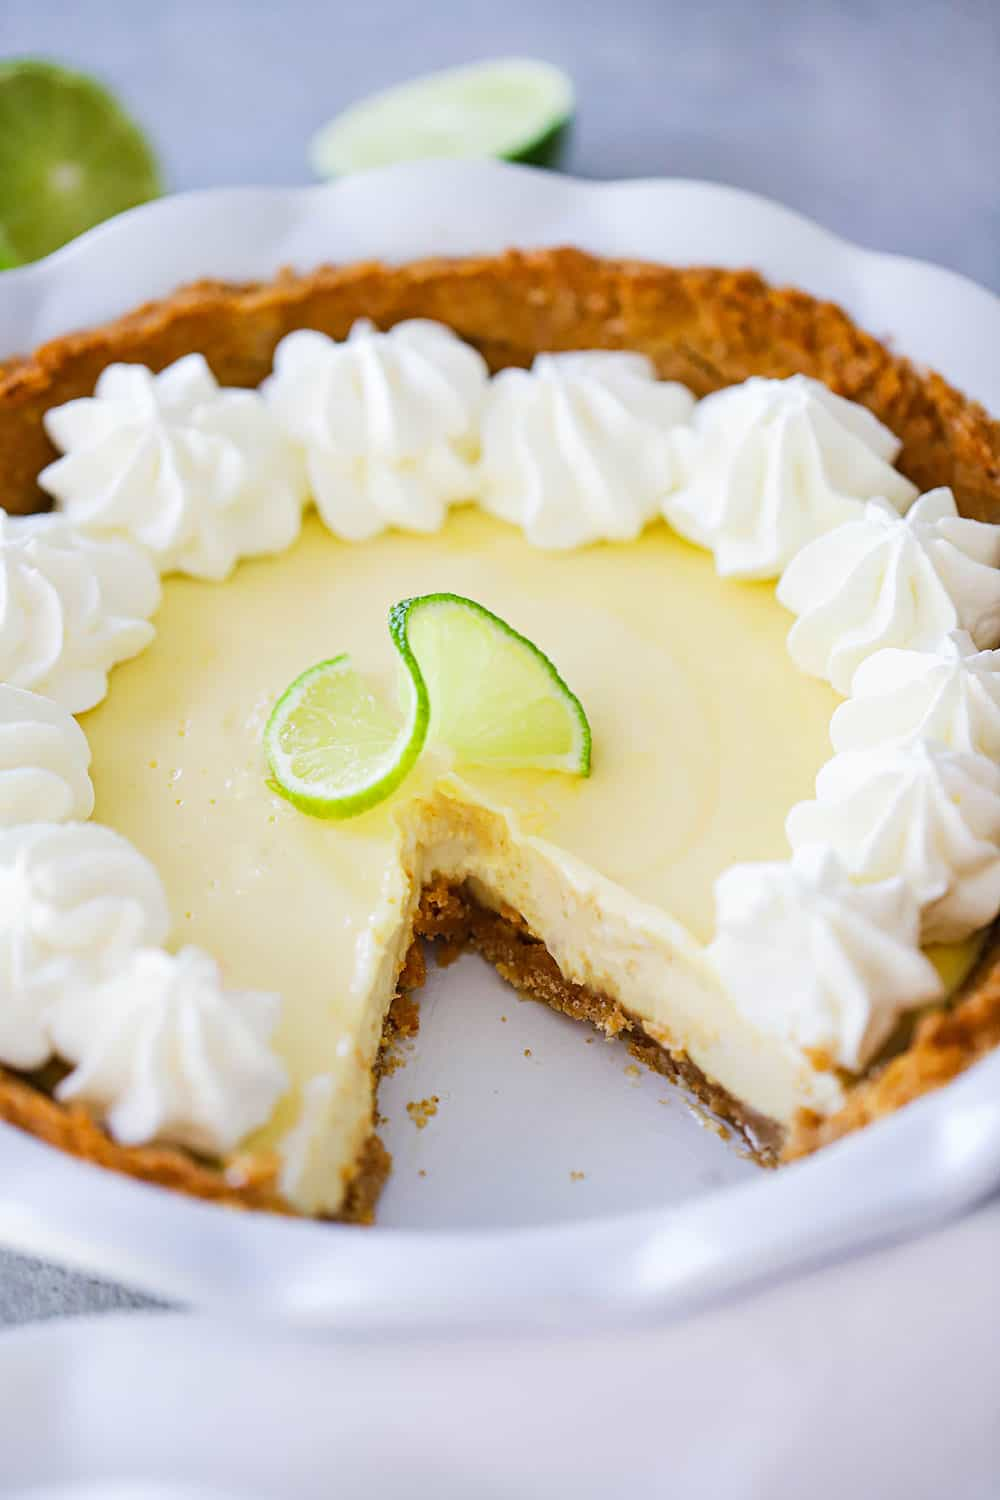 A key lime pie in a white pie dish with a slice cut out of it.